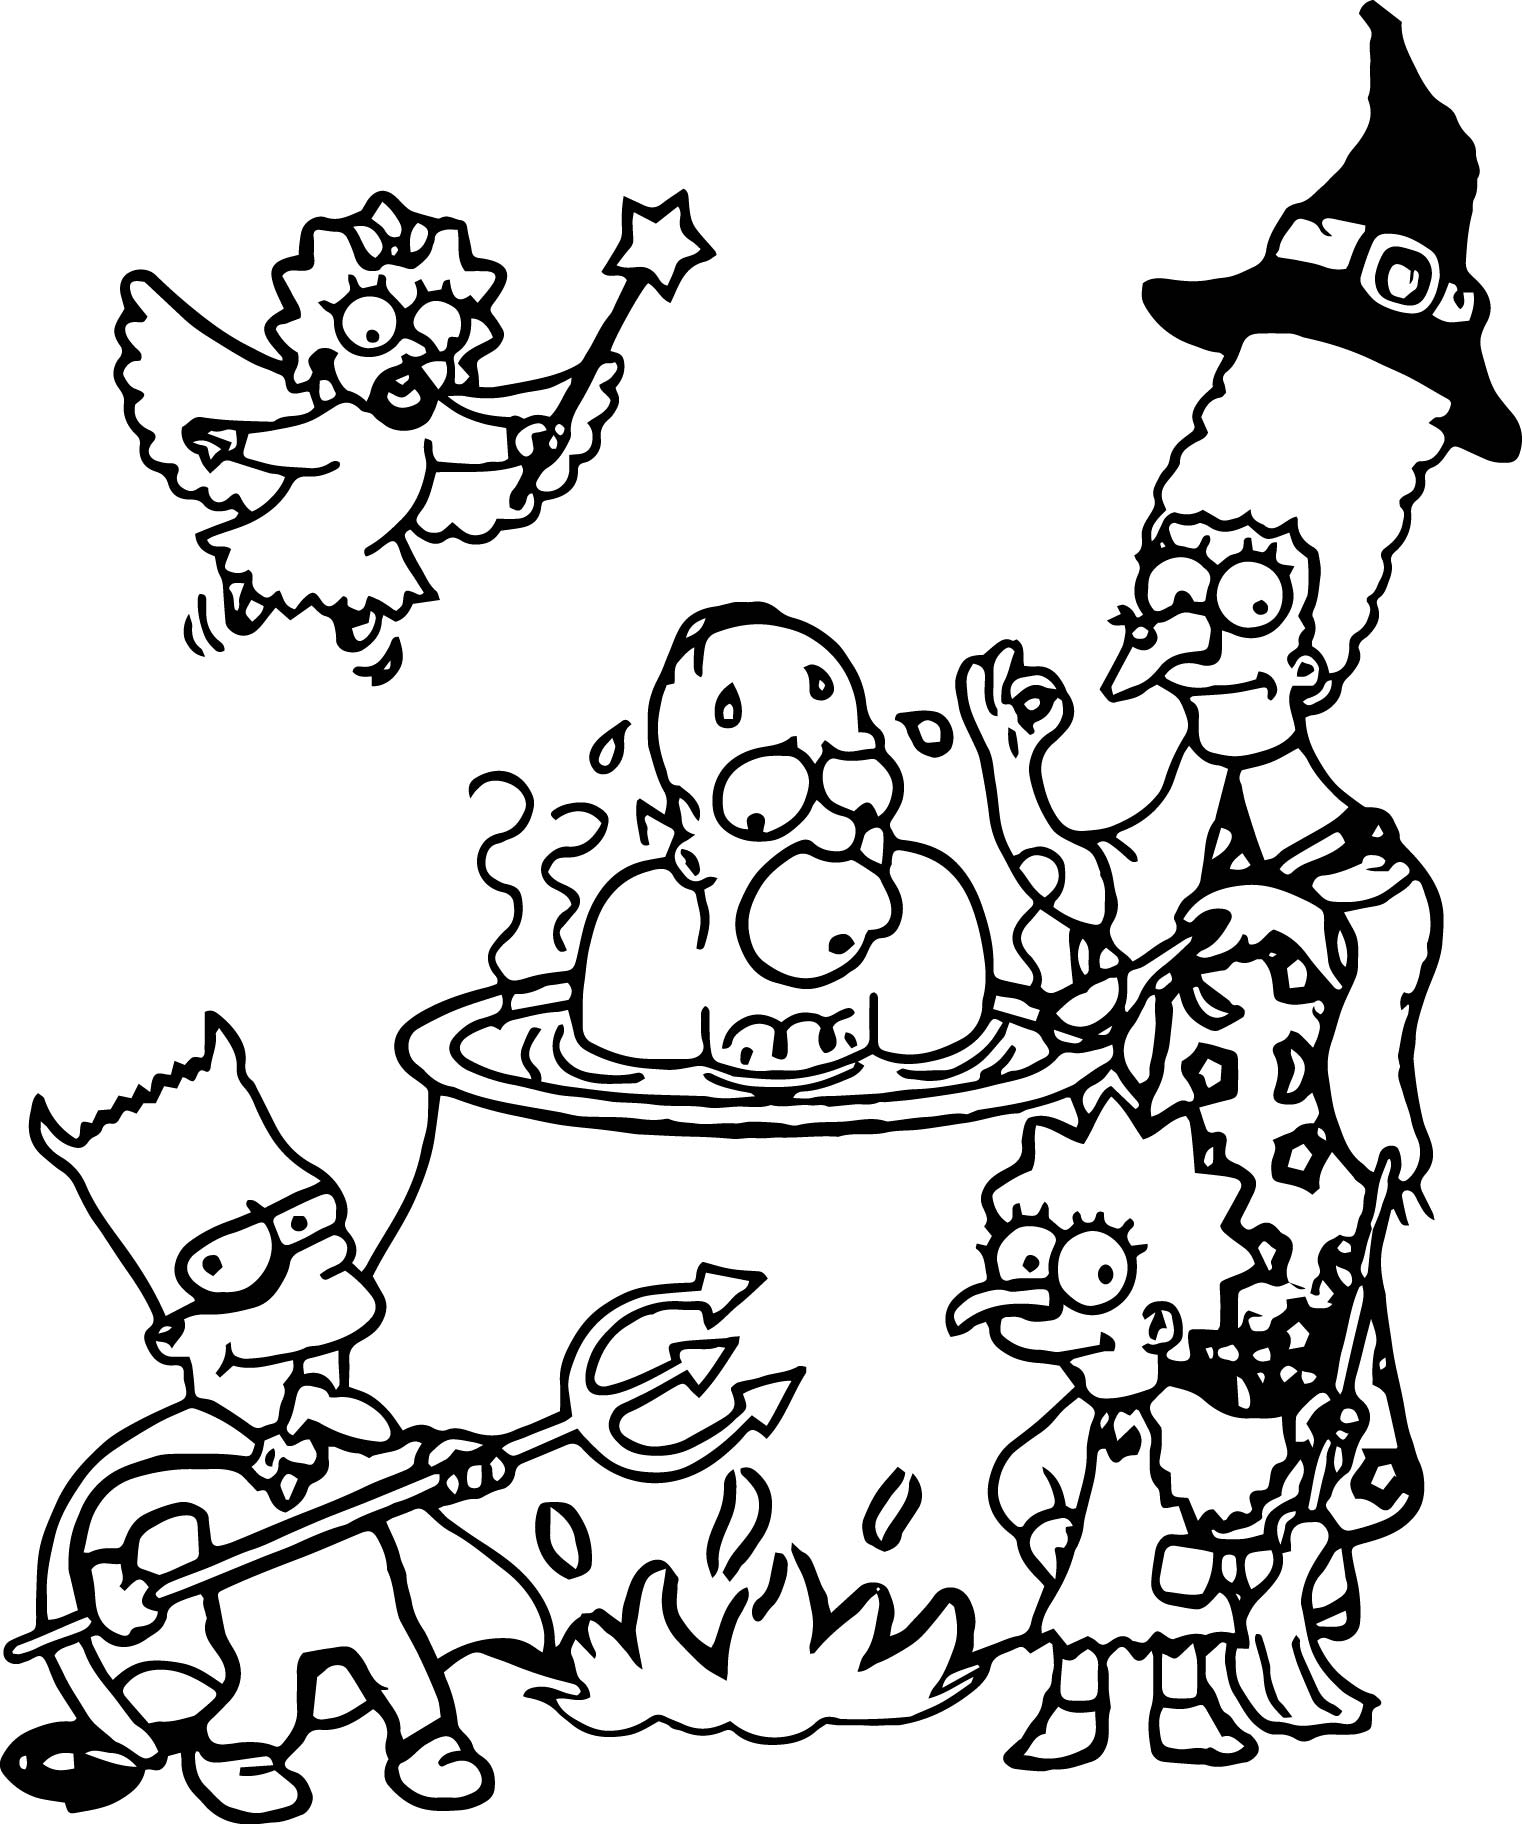 halloween queen gina the simpsons coloring page - Simpsons Halloween Coloring Pages